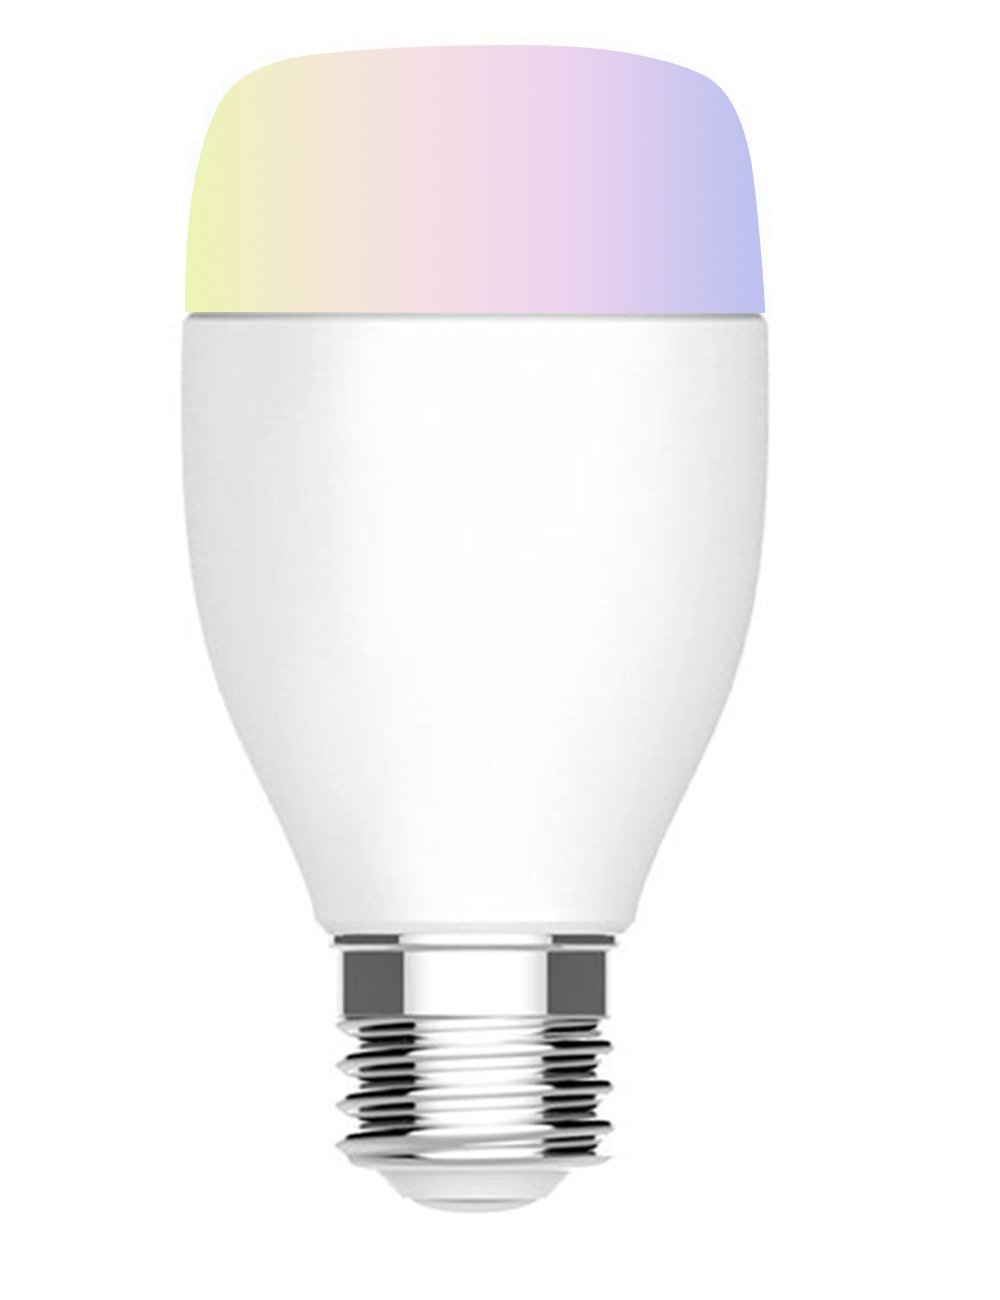 WiFi Smart Bulb Colour Dimmable LED Light E27 Smart Light Bulbs Compatible  with Alexa and Google Home, Emit Tuneable White Lights No Hub Required, ...